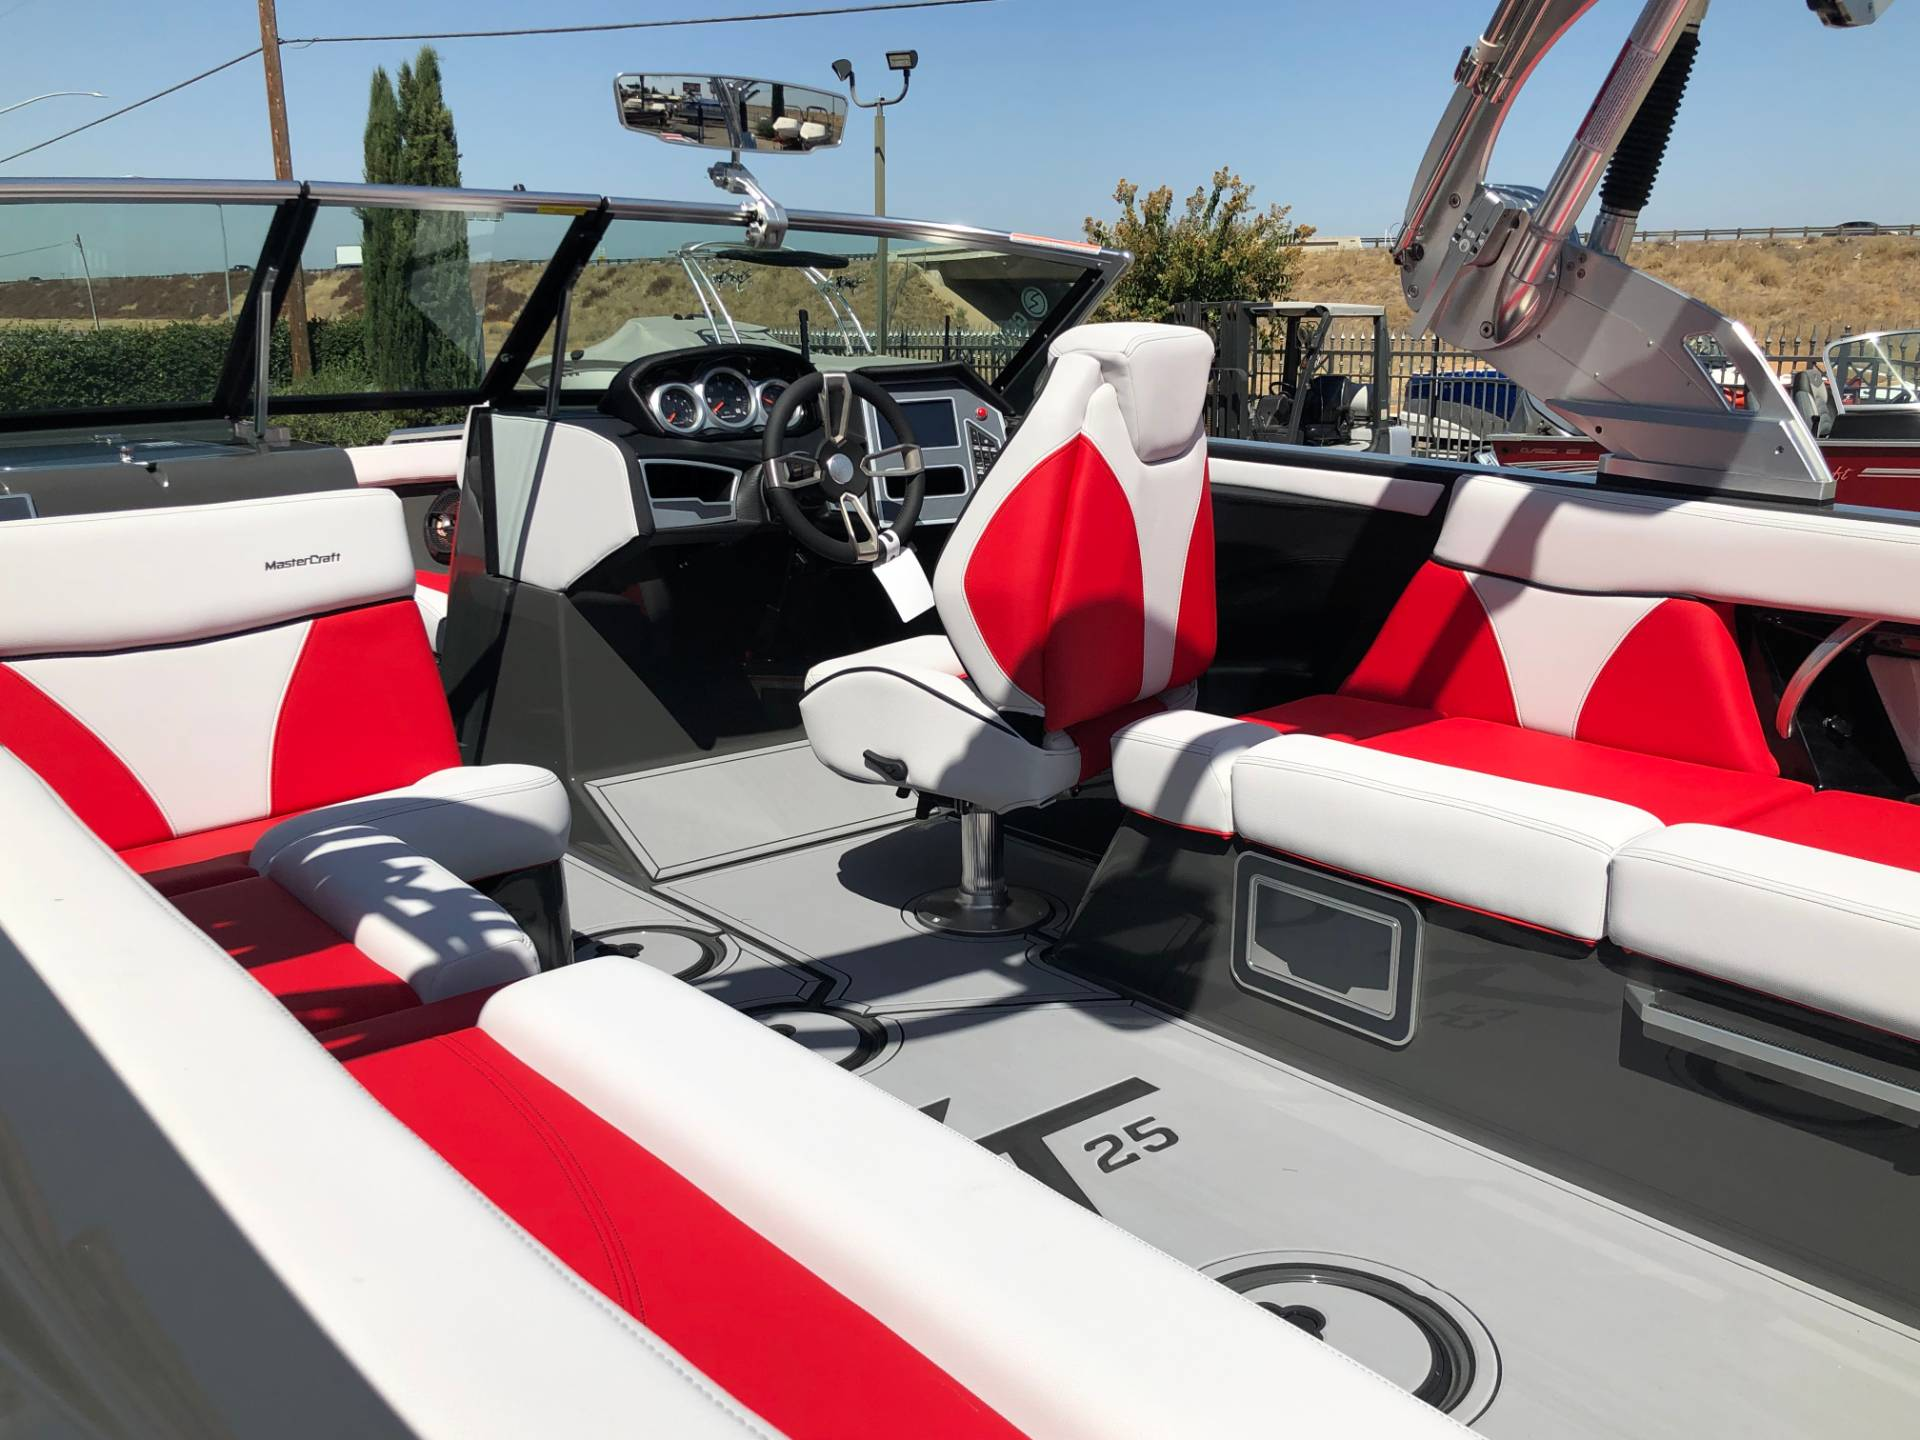 2020 Mastercraft XT25 in Madera, California - Photo 6